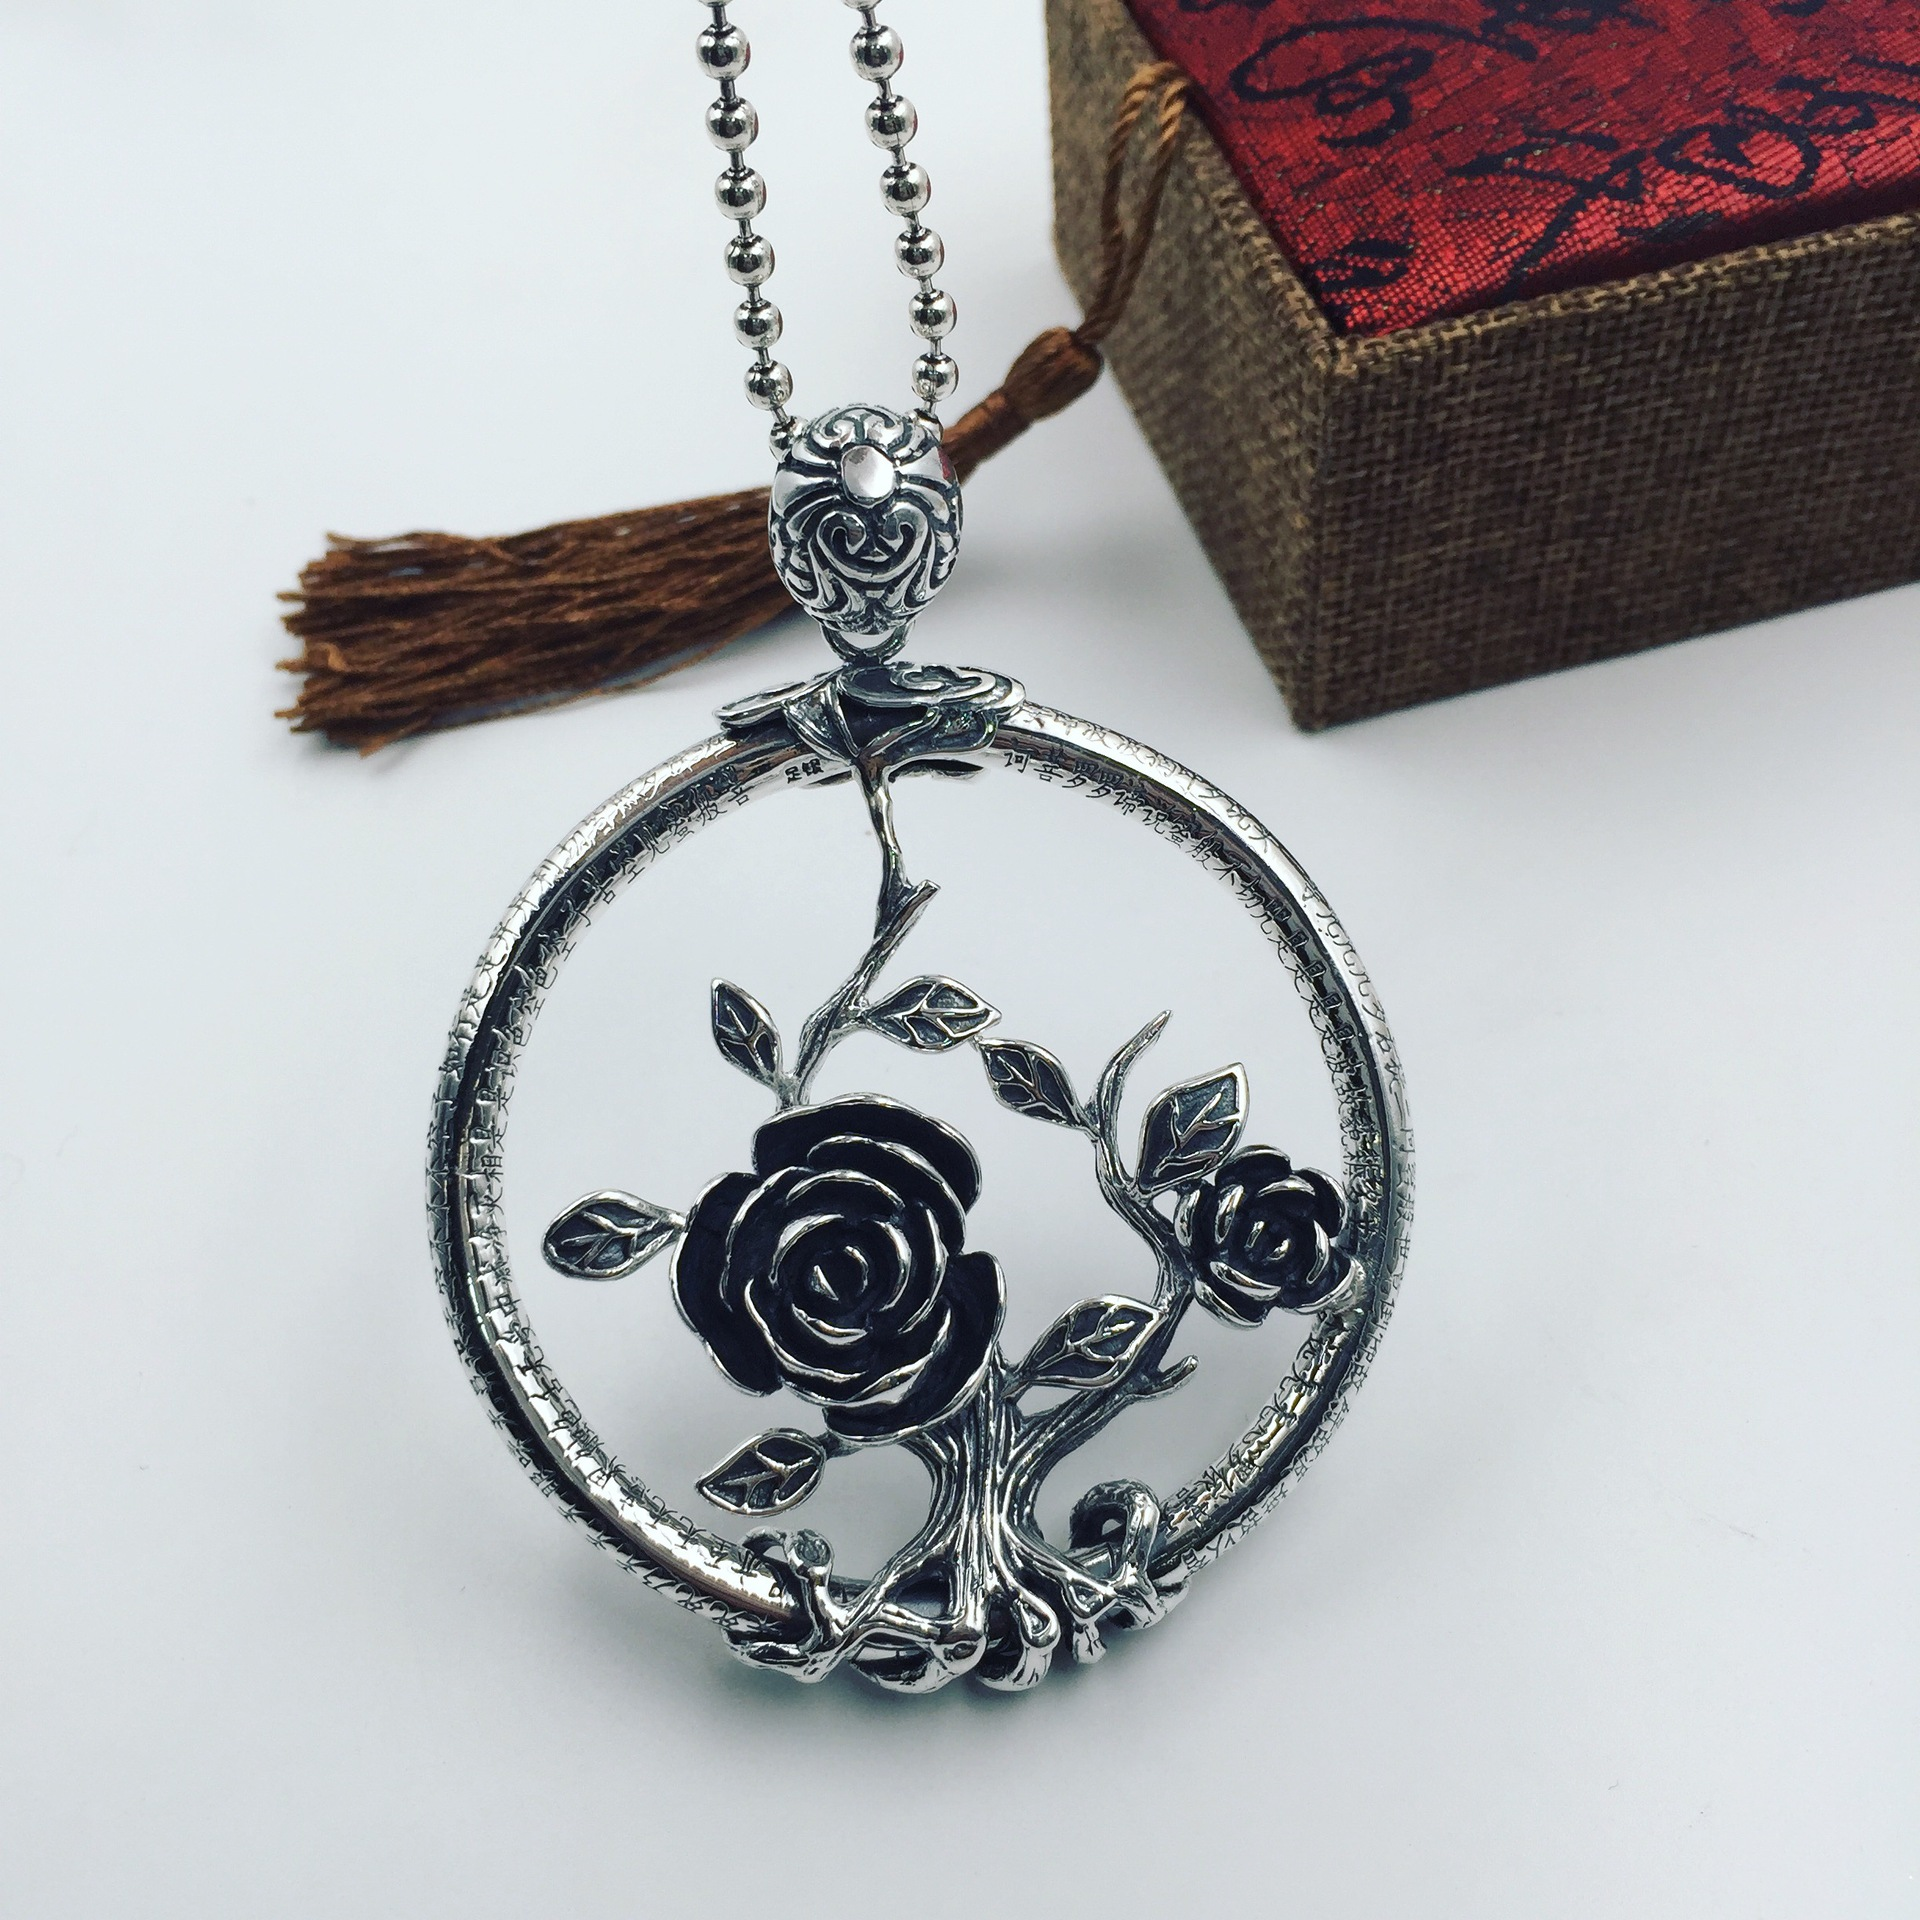 S990 Silver Rose Heart Pendant large stereo sweater chain Pendant love heart opening wings shape sweater chain